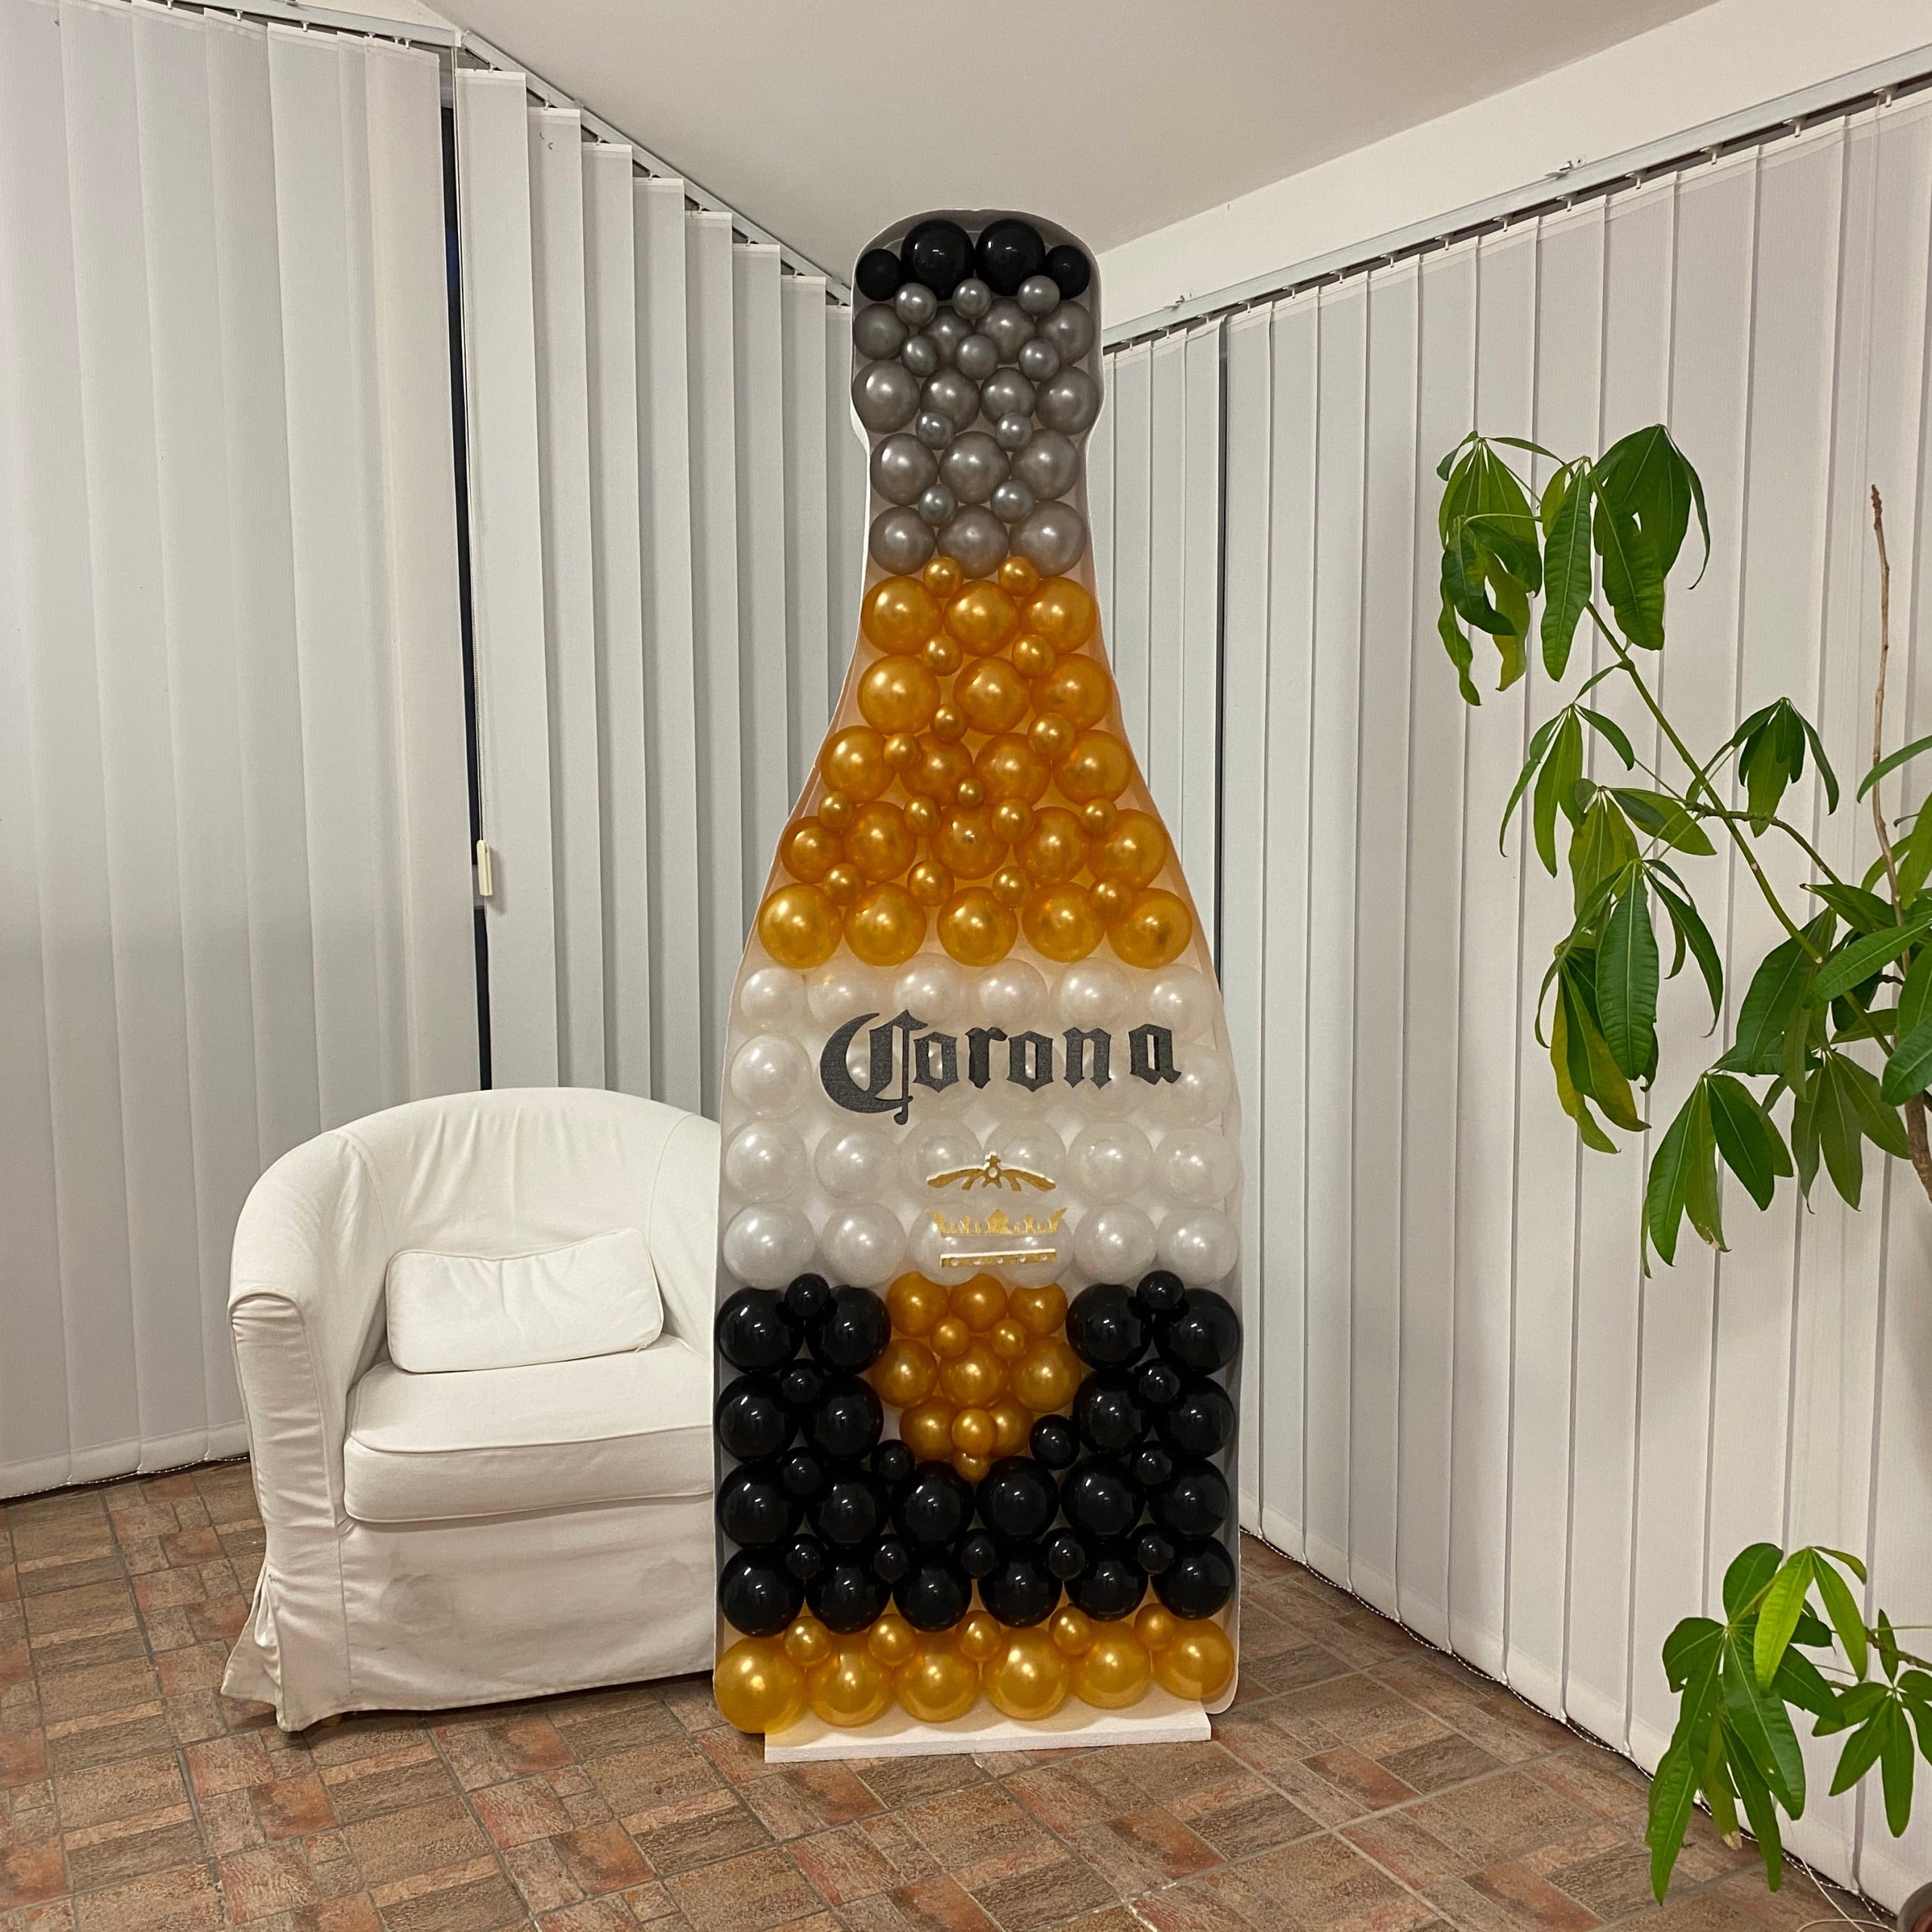 Balloon Frame - Bottle - 200cm x 70cm